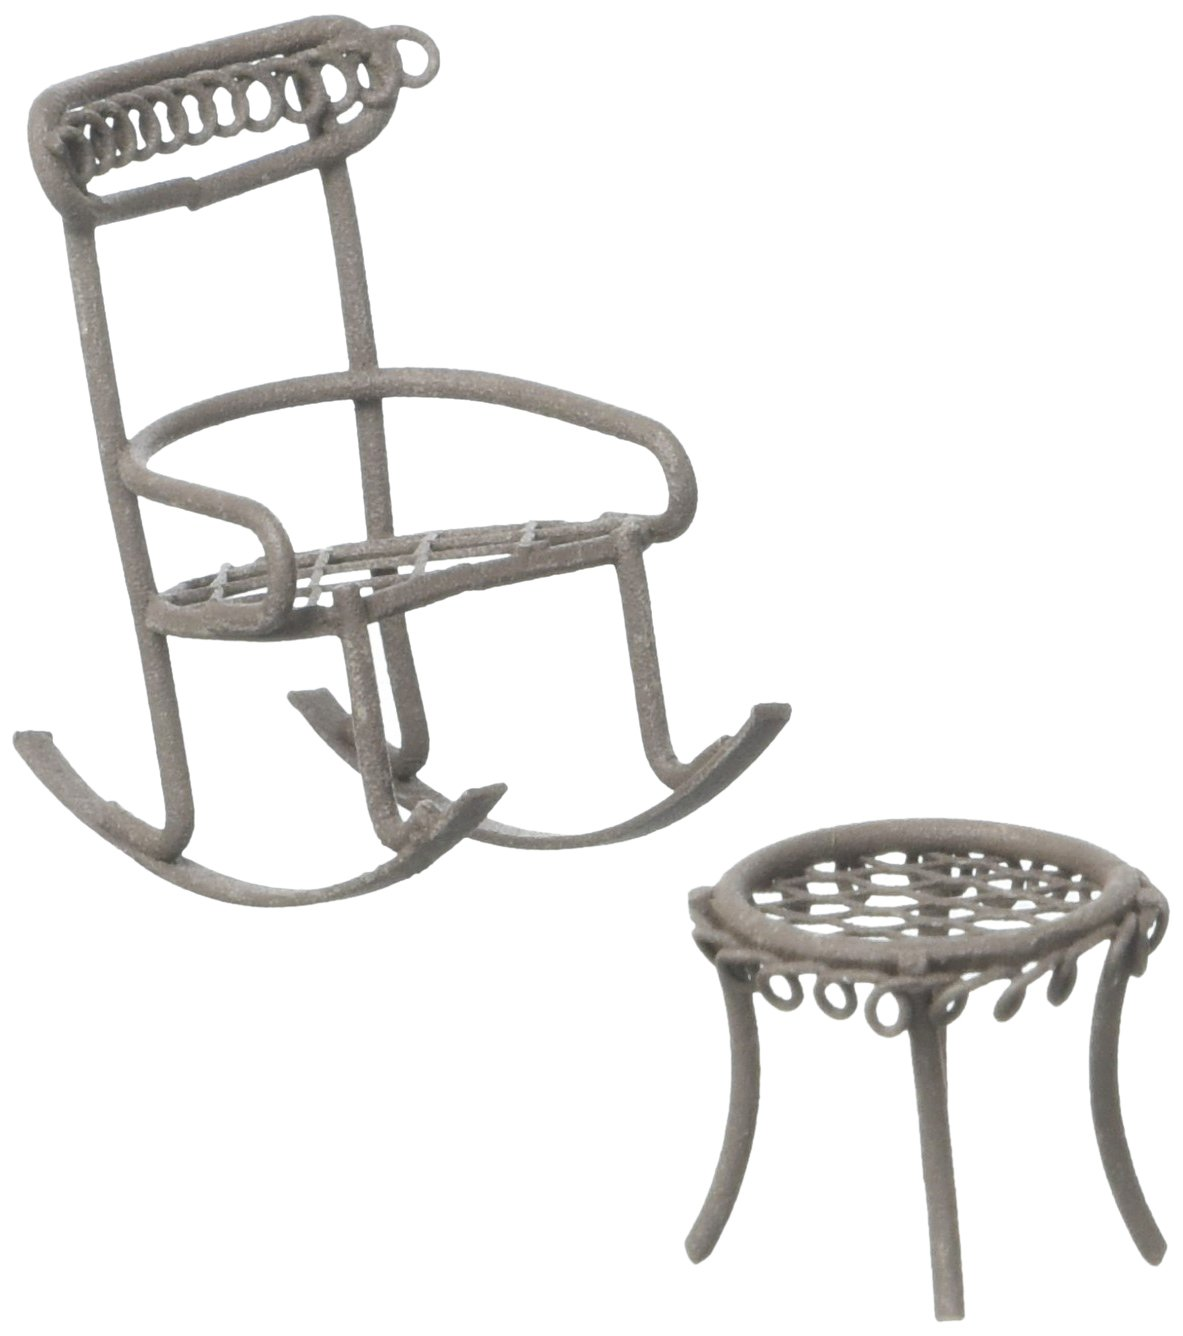 Midwest Design Micro Mini Iron Garden Rocking Chair & Table Set (2 Pack), Rustic MD50089